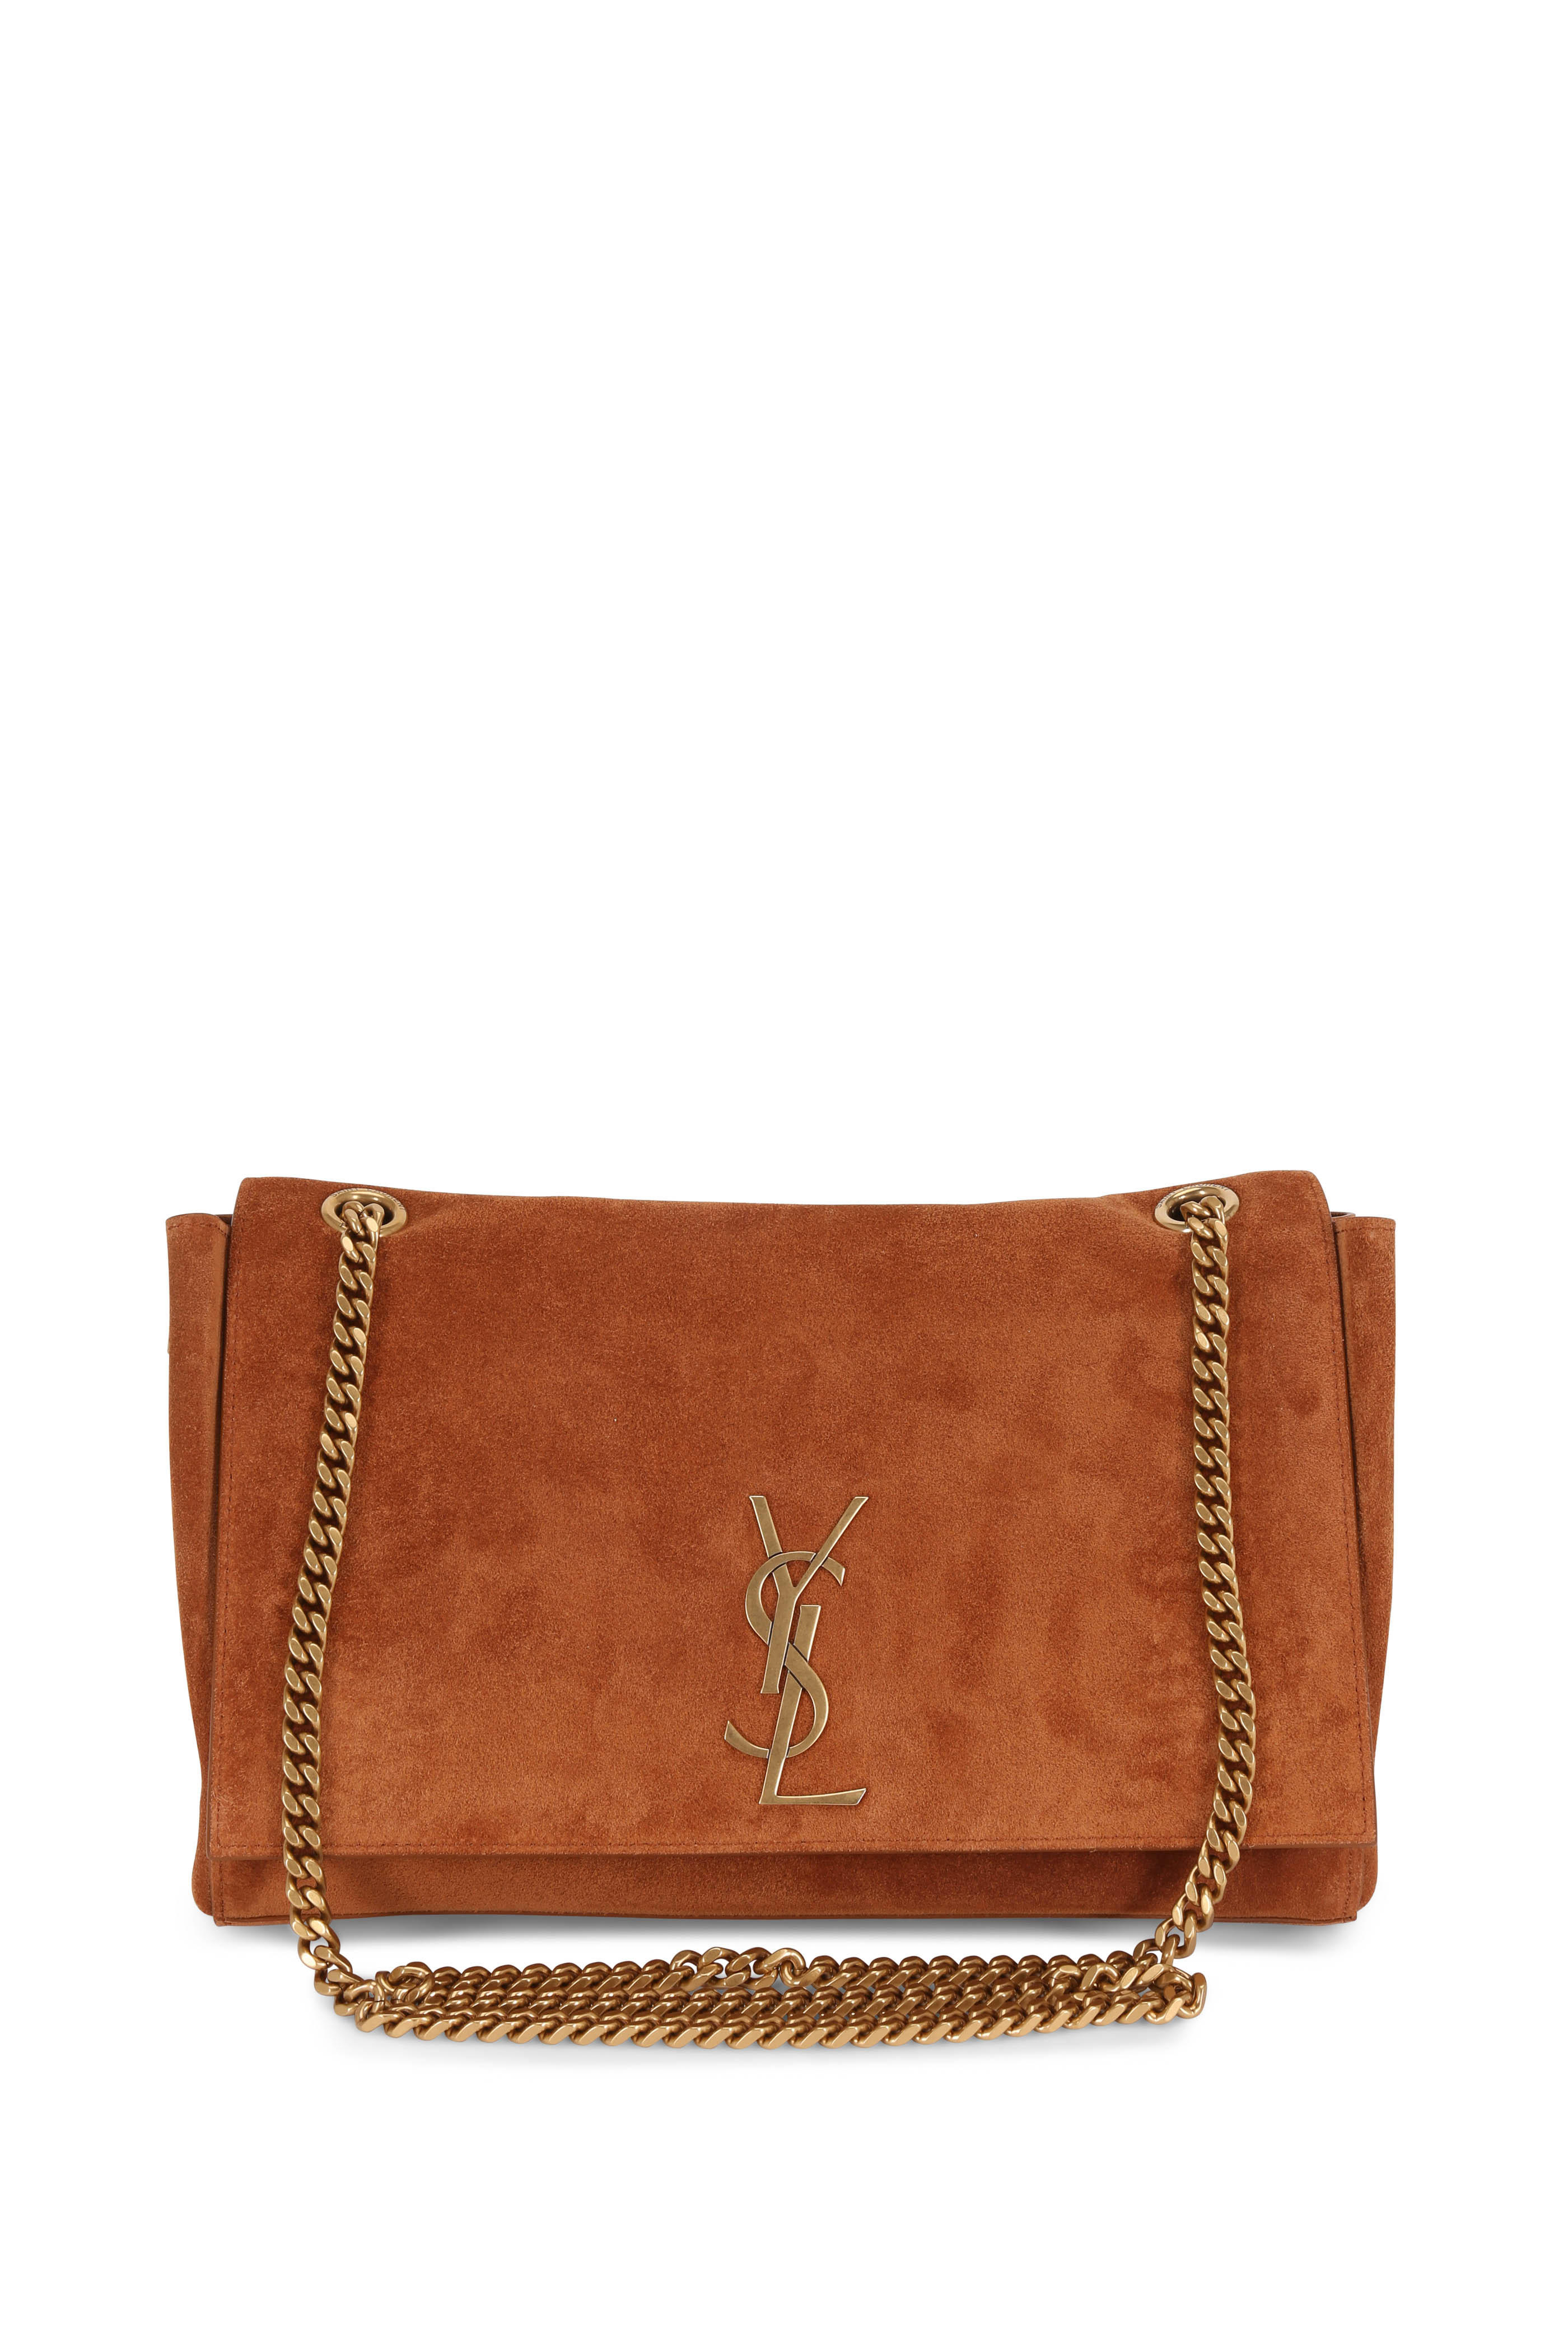 8c60bf4ce8 Saint Laurent - Kate Cognac Suede To Leather Reversible Chain Bag ...